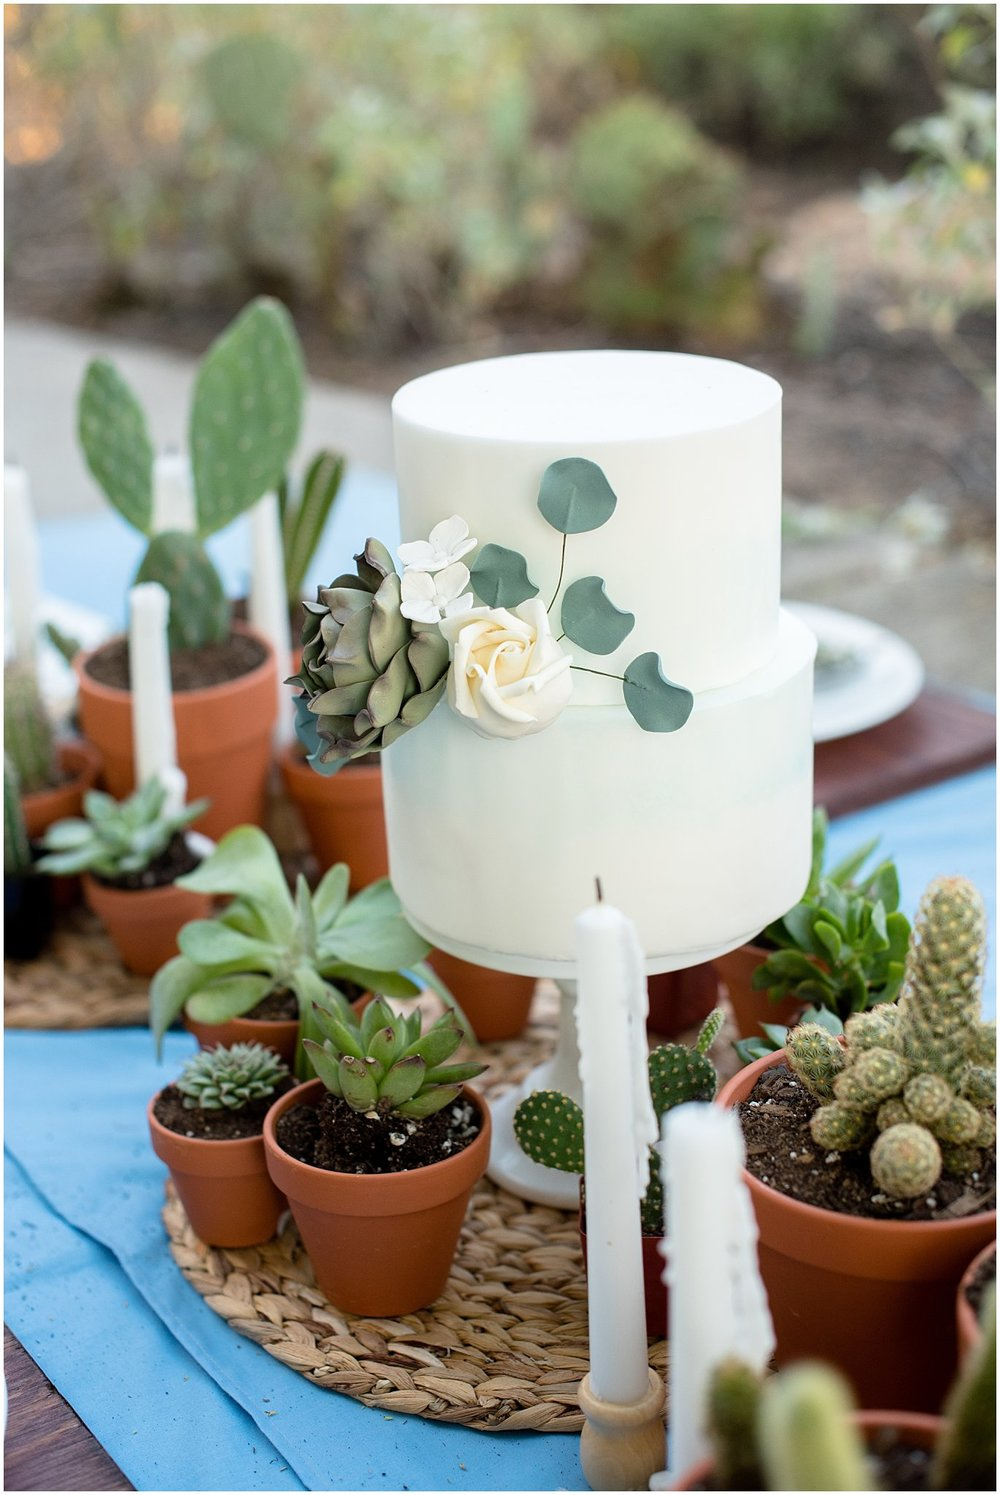 Alia from  Crumbs Cake Boutique  did an absolutely fabulous job with this cake. With a succulent dusted with purple, a rose, some boho flowers, and a blue water color technique, she captured every important element of this shoot.